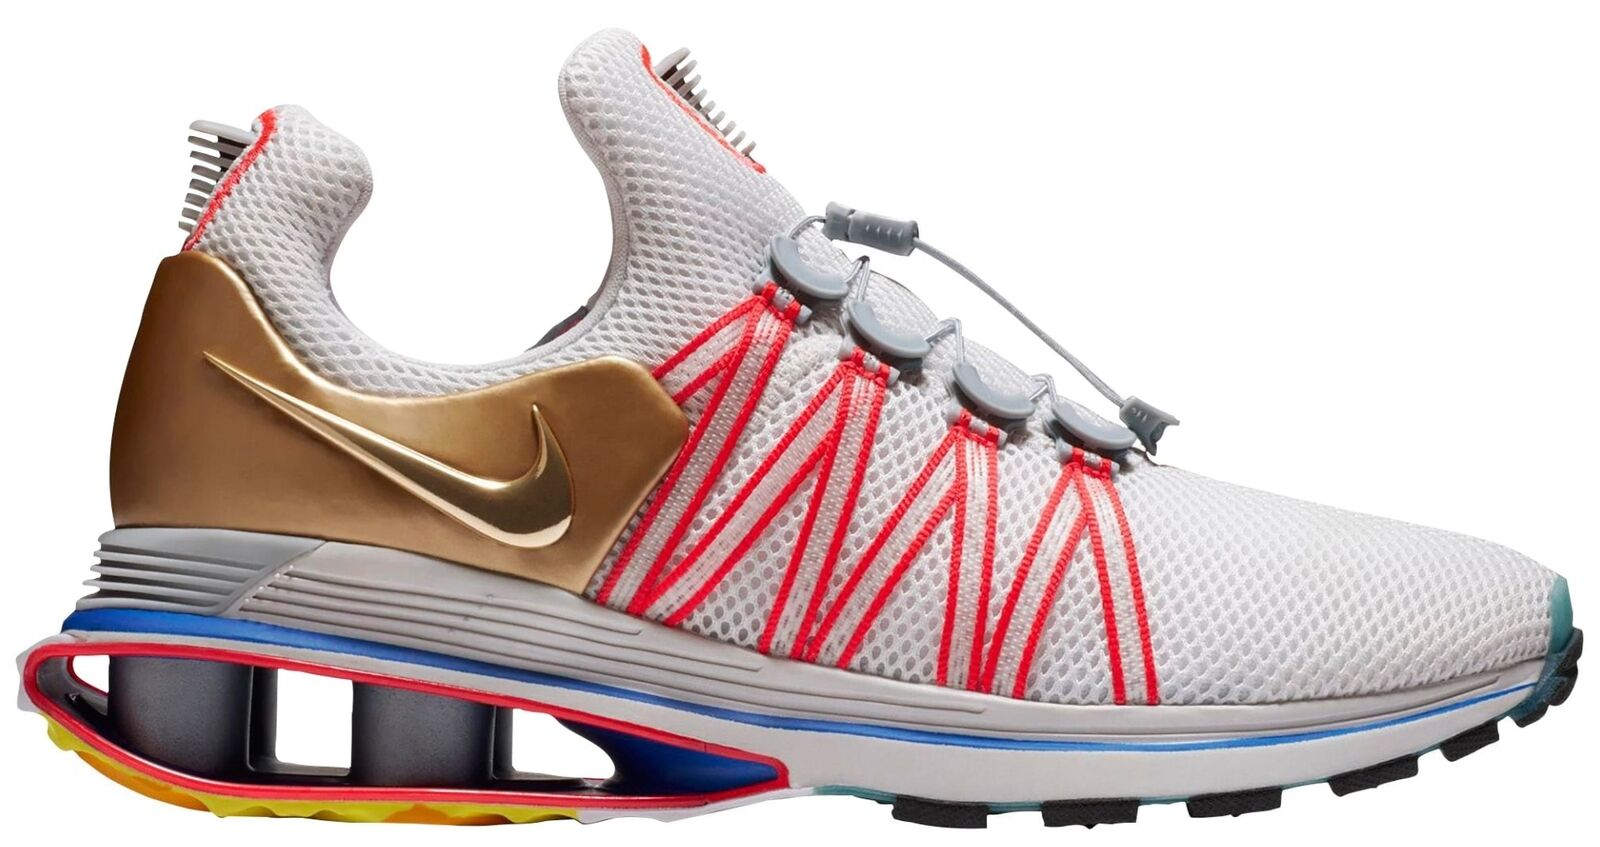 Nike Shox Gravity Mens AQ8553-009 Grey Red Metallic Gold Running Shoes Comfortable best-selling model of the brand